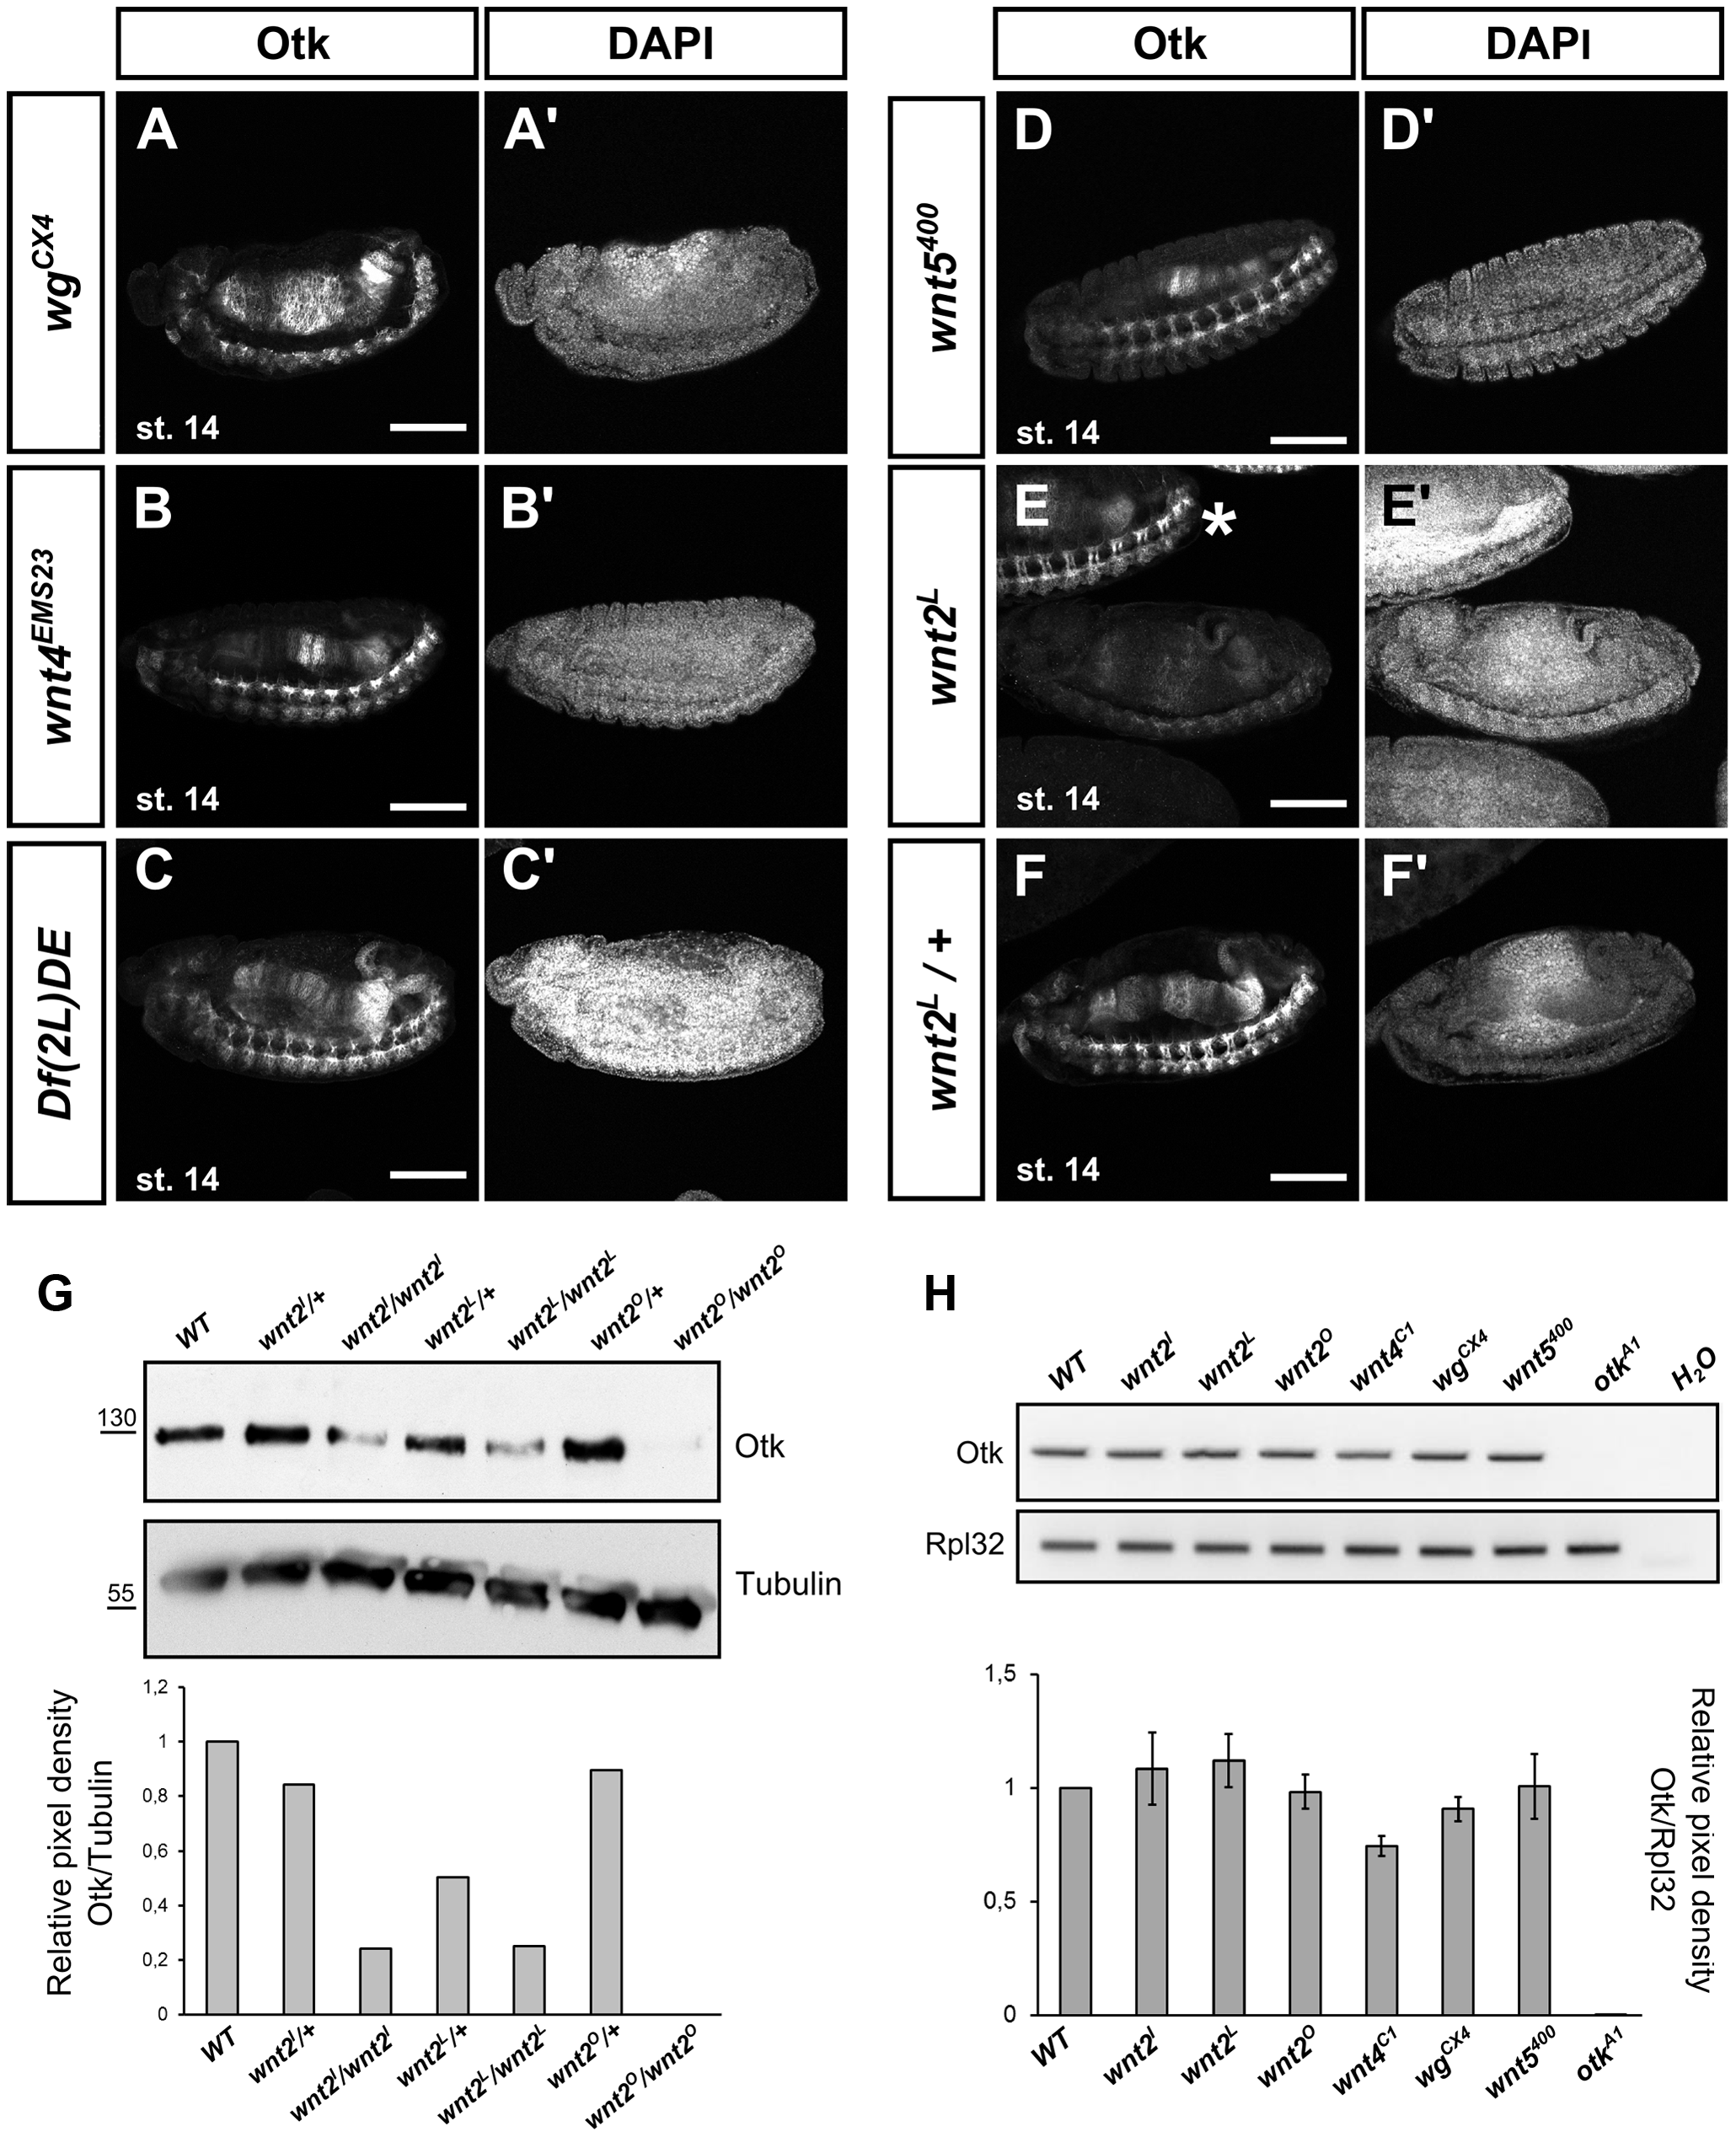 Localization of Otk in embryos homozygous mutant for different Wnt family members.